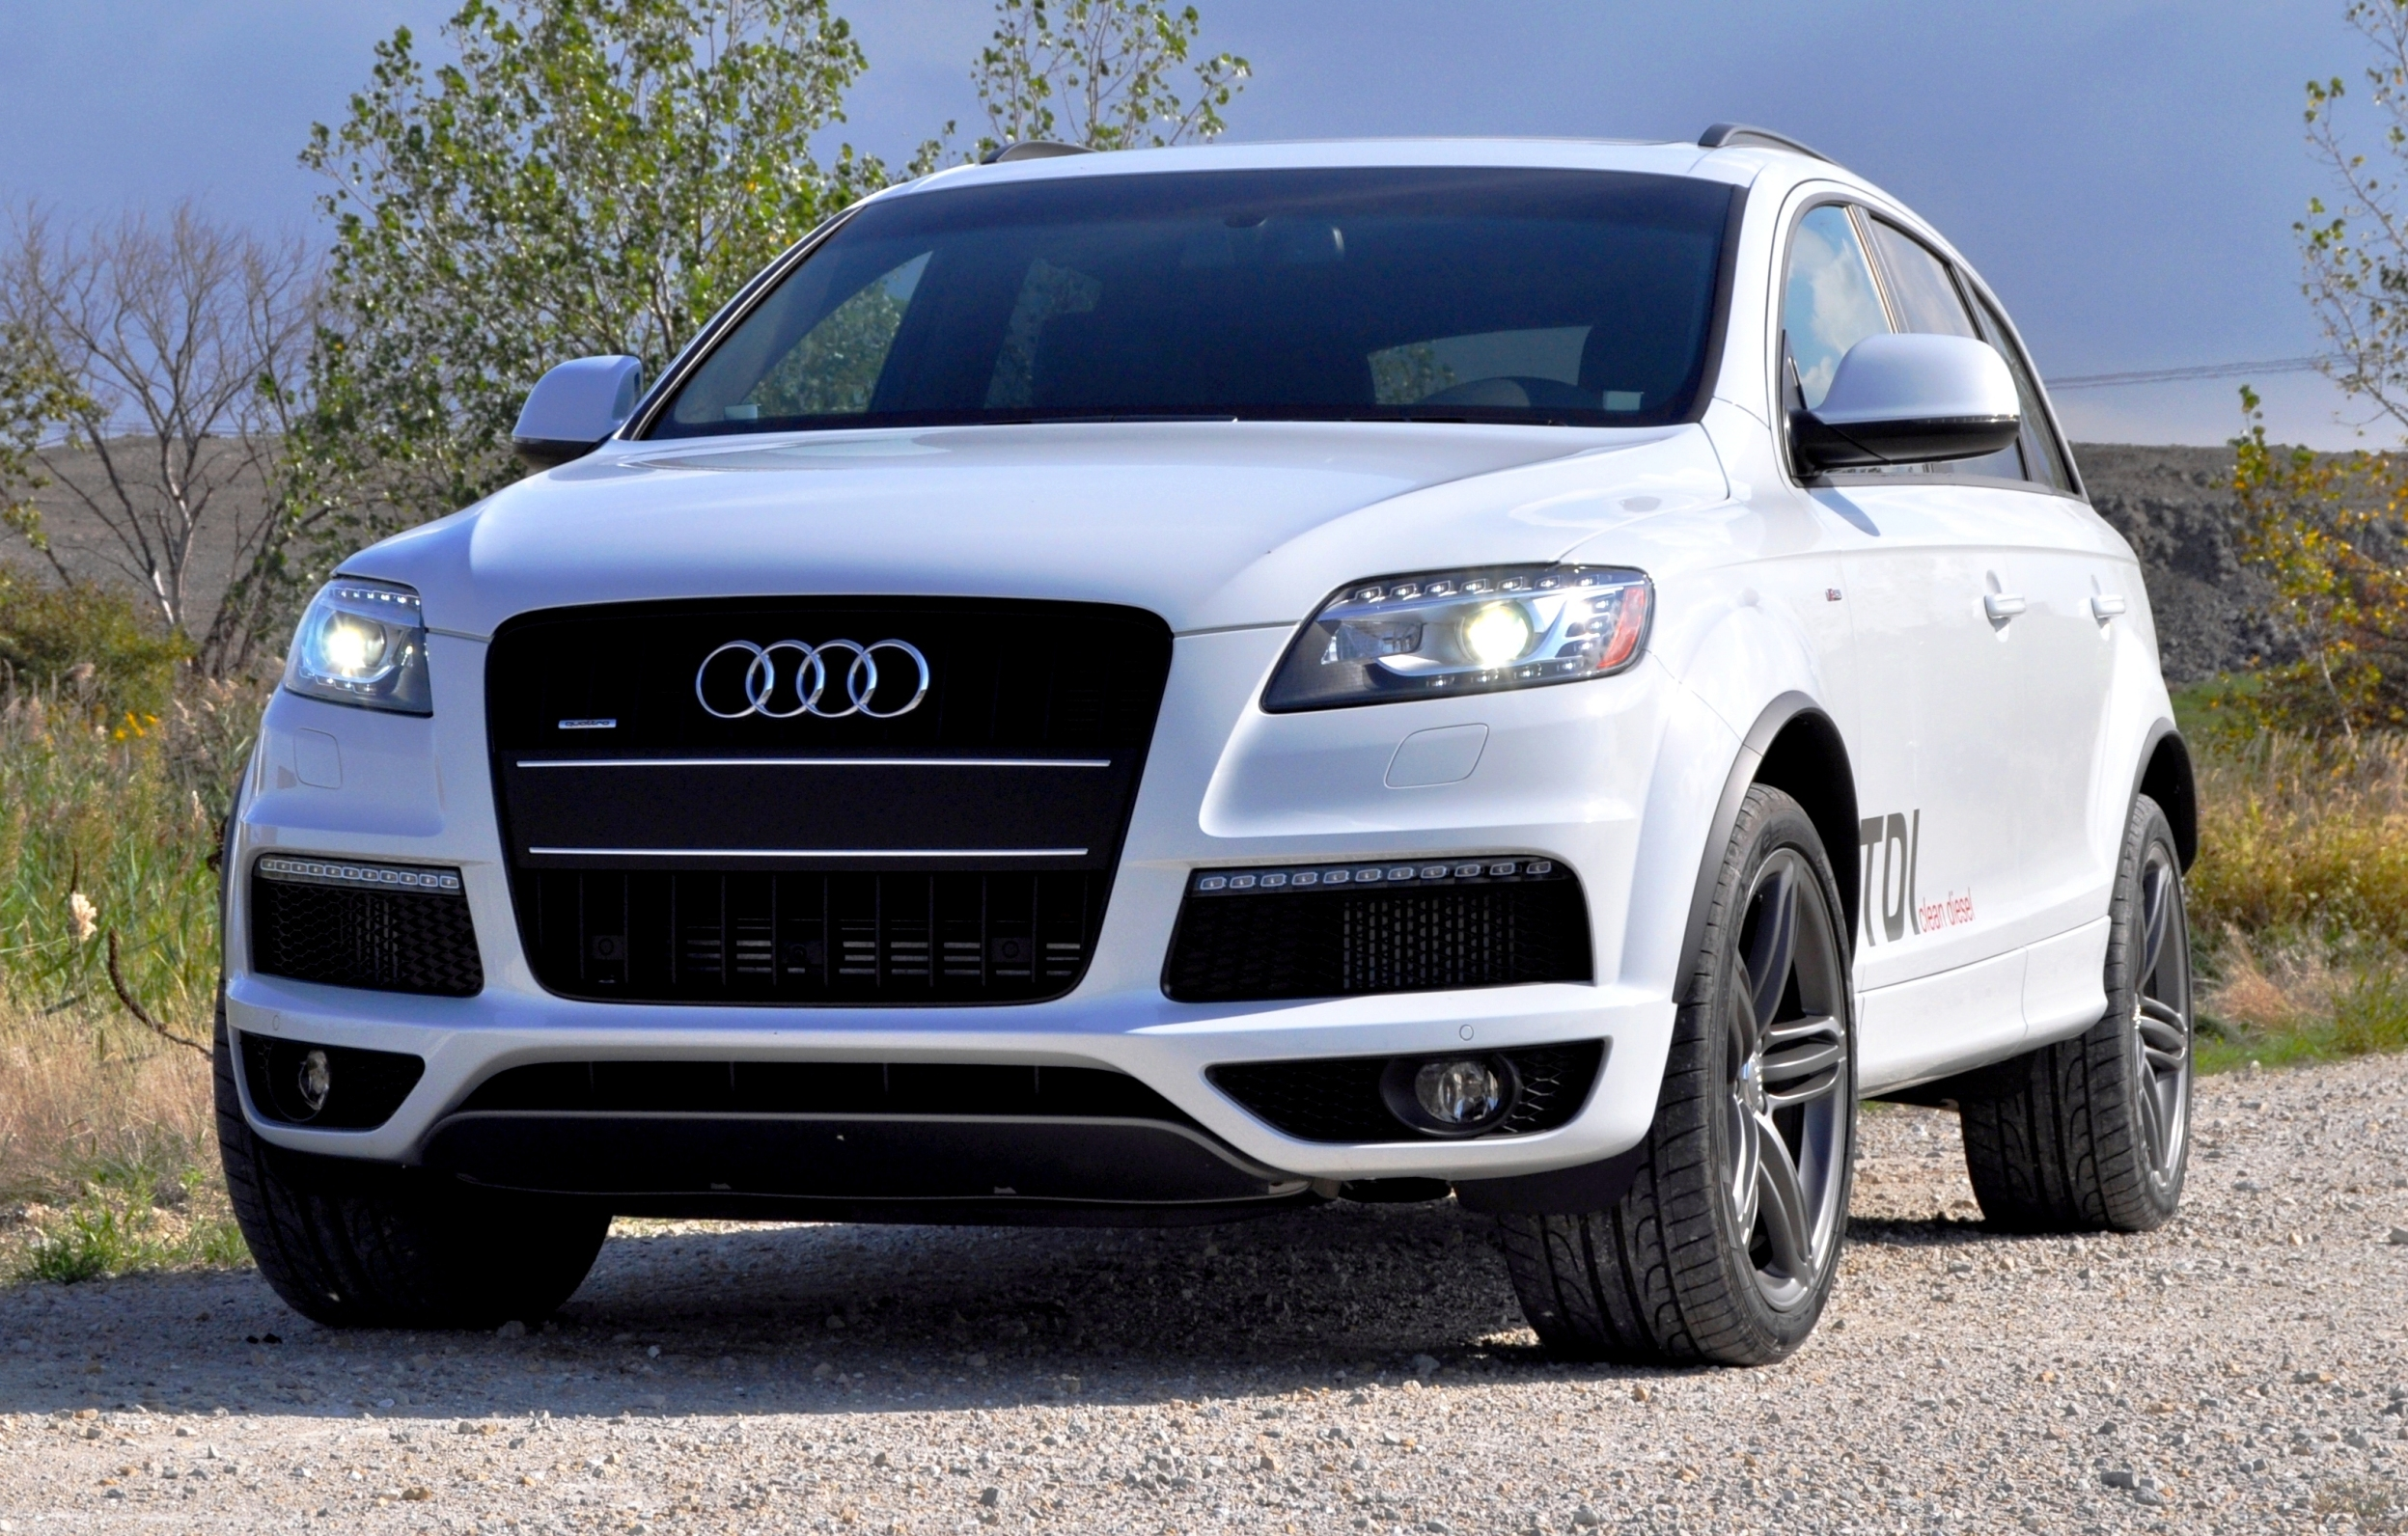 2014 audi q7 tdi s line driven gallery 527871 top speed. Black Bedroom Furniture Sets. Home Design Ideas